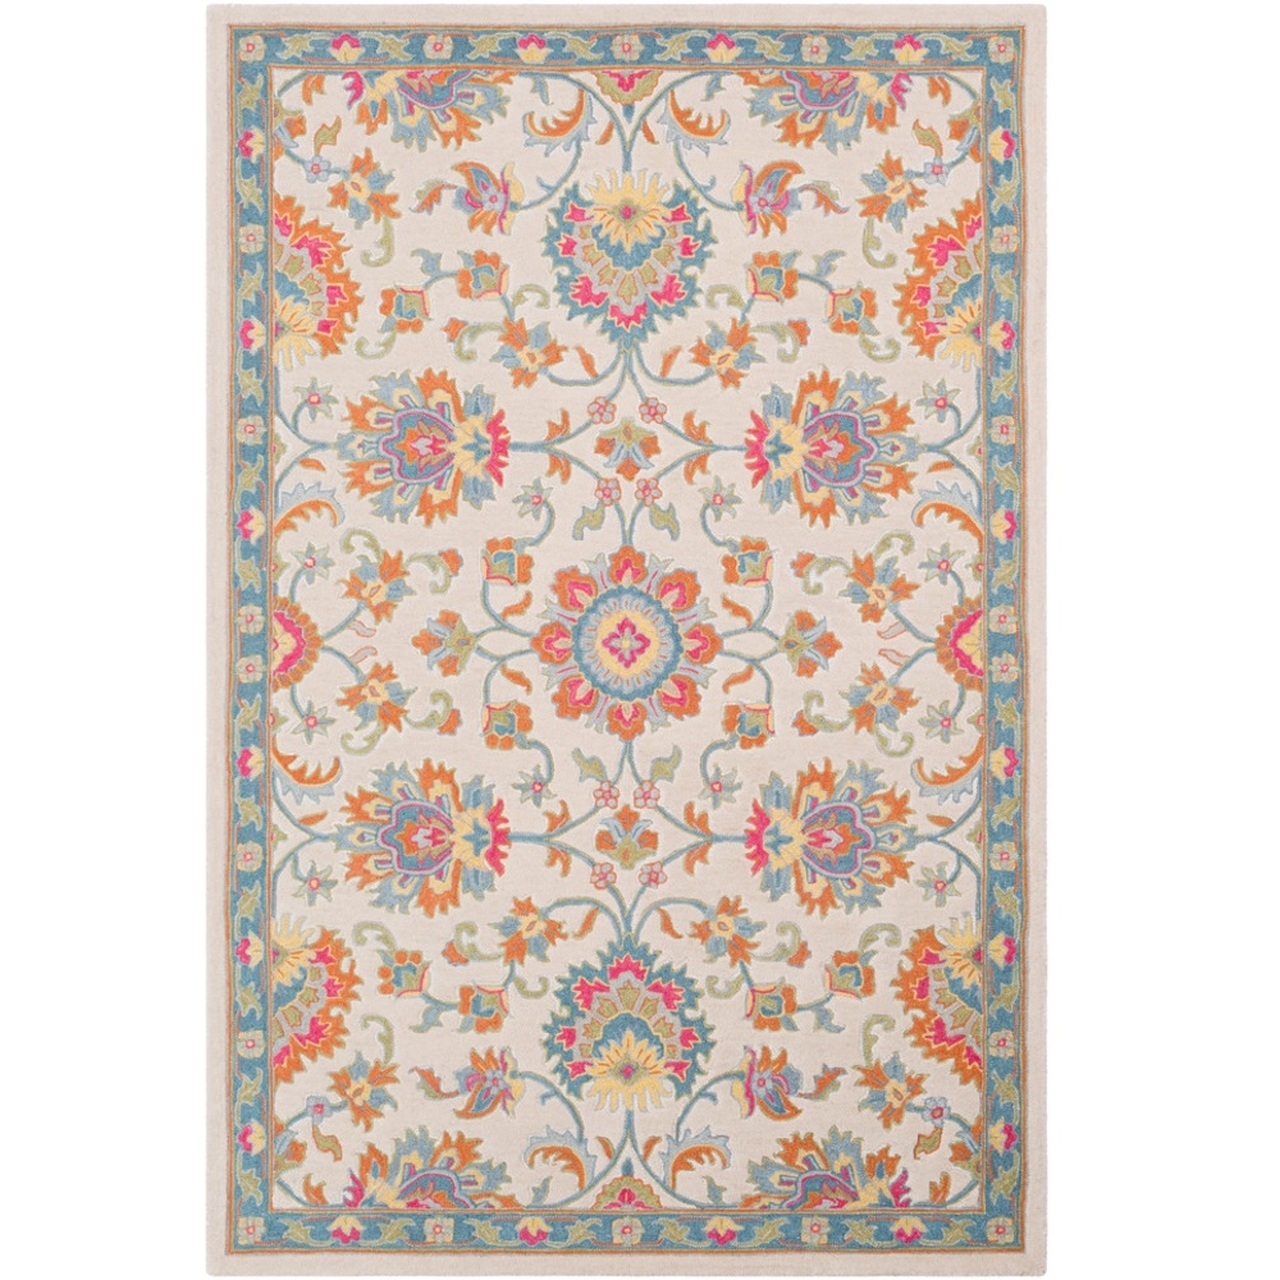 3 Beige Orange Persian Floral Pattern Hand Tufted Wool Area Rug Christmas Central